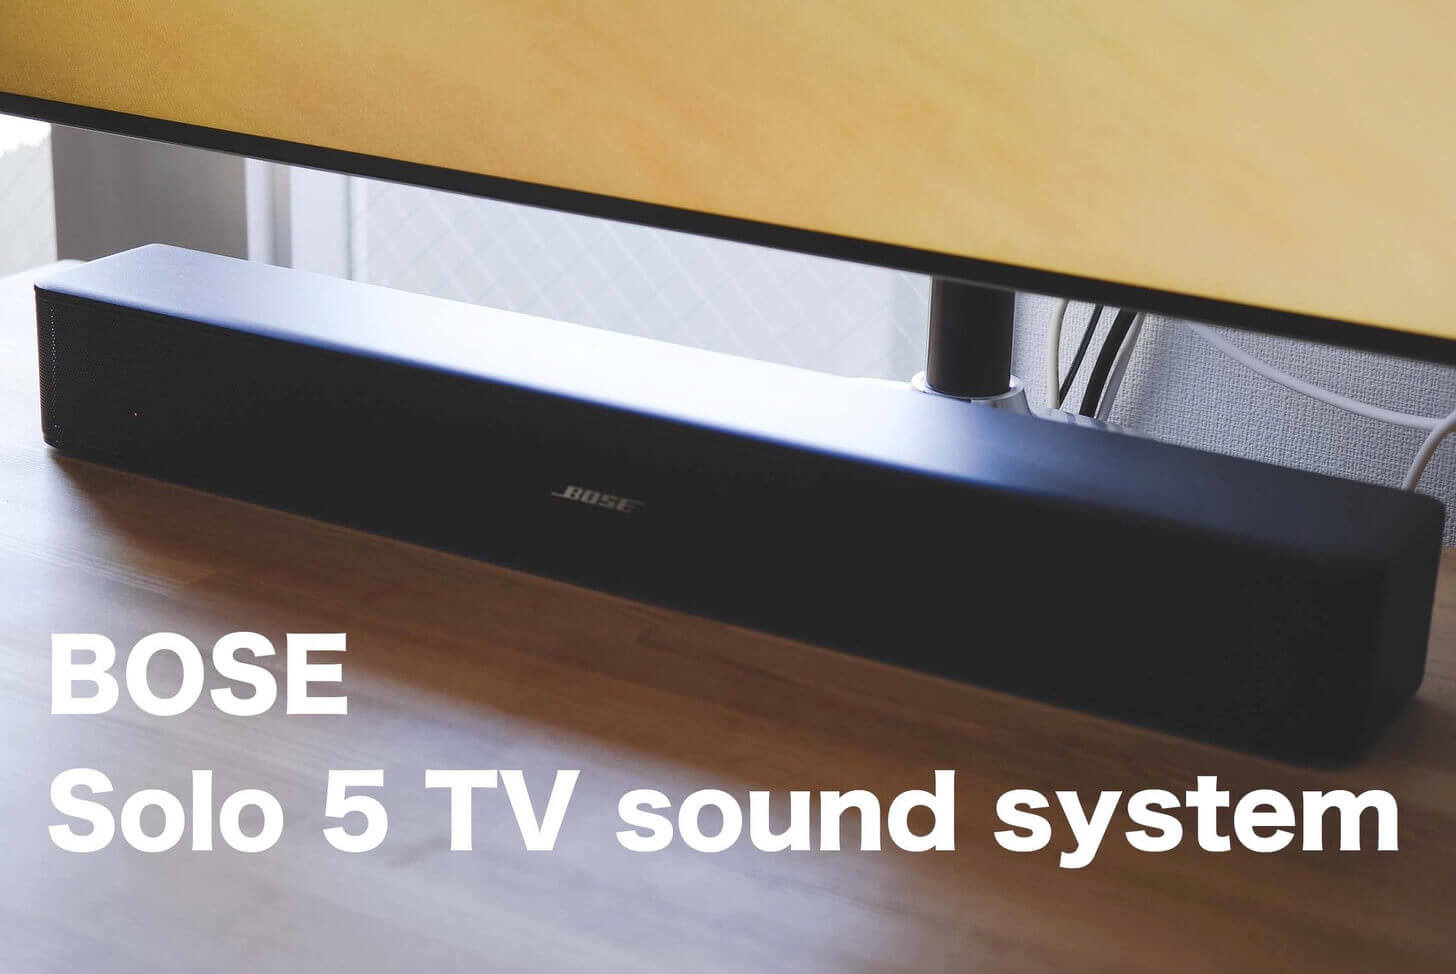 Bose solo 5 tv sound system1